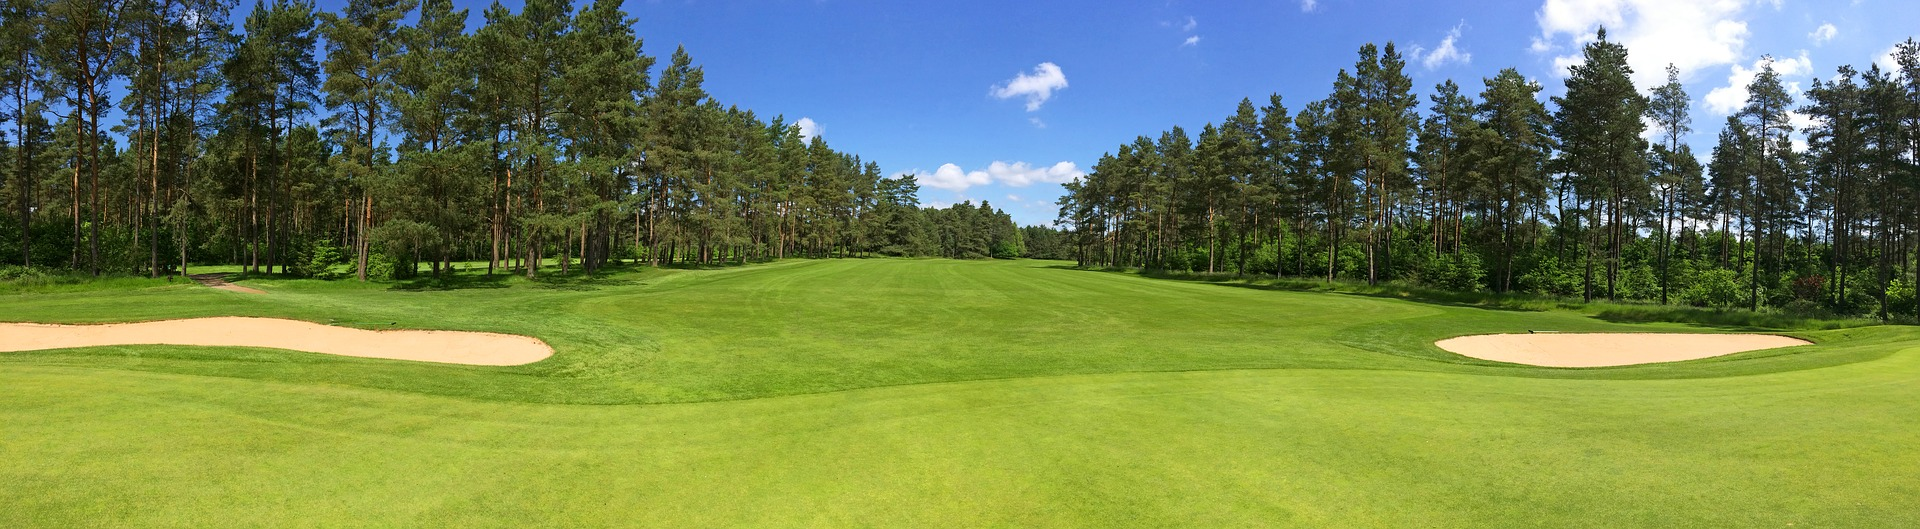 liquor license consulting for golf courses in nys